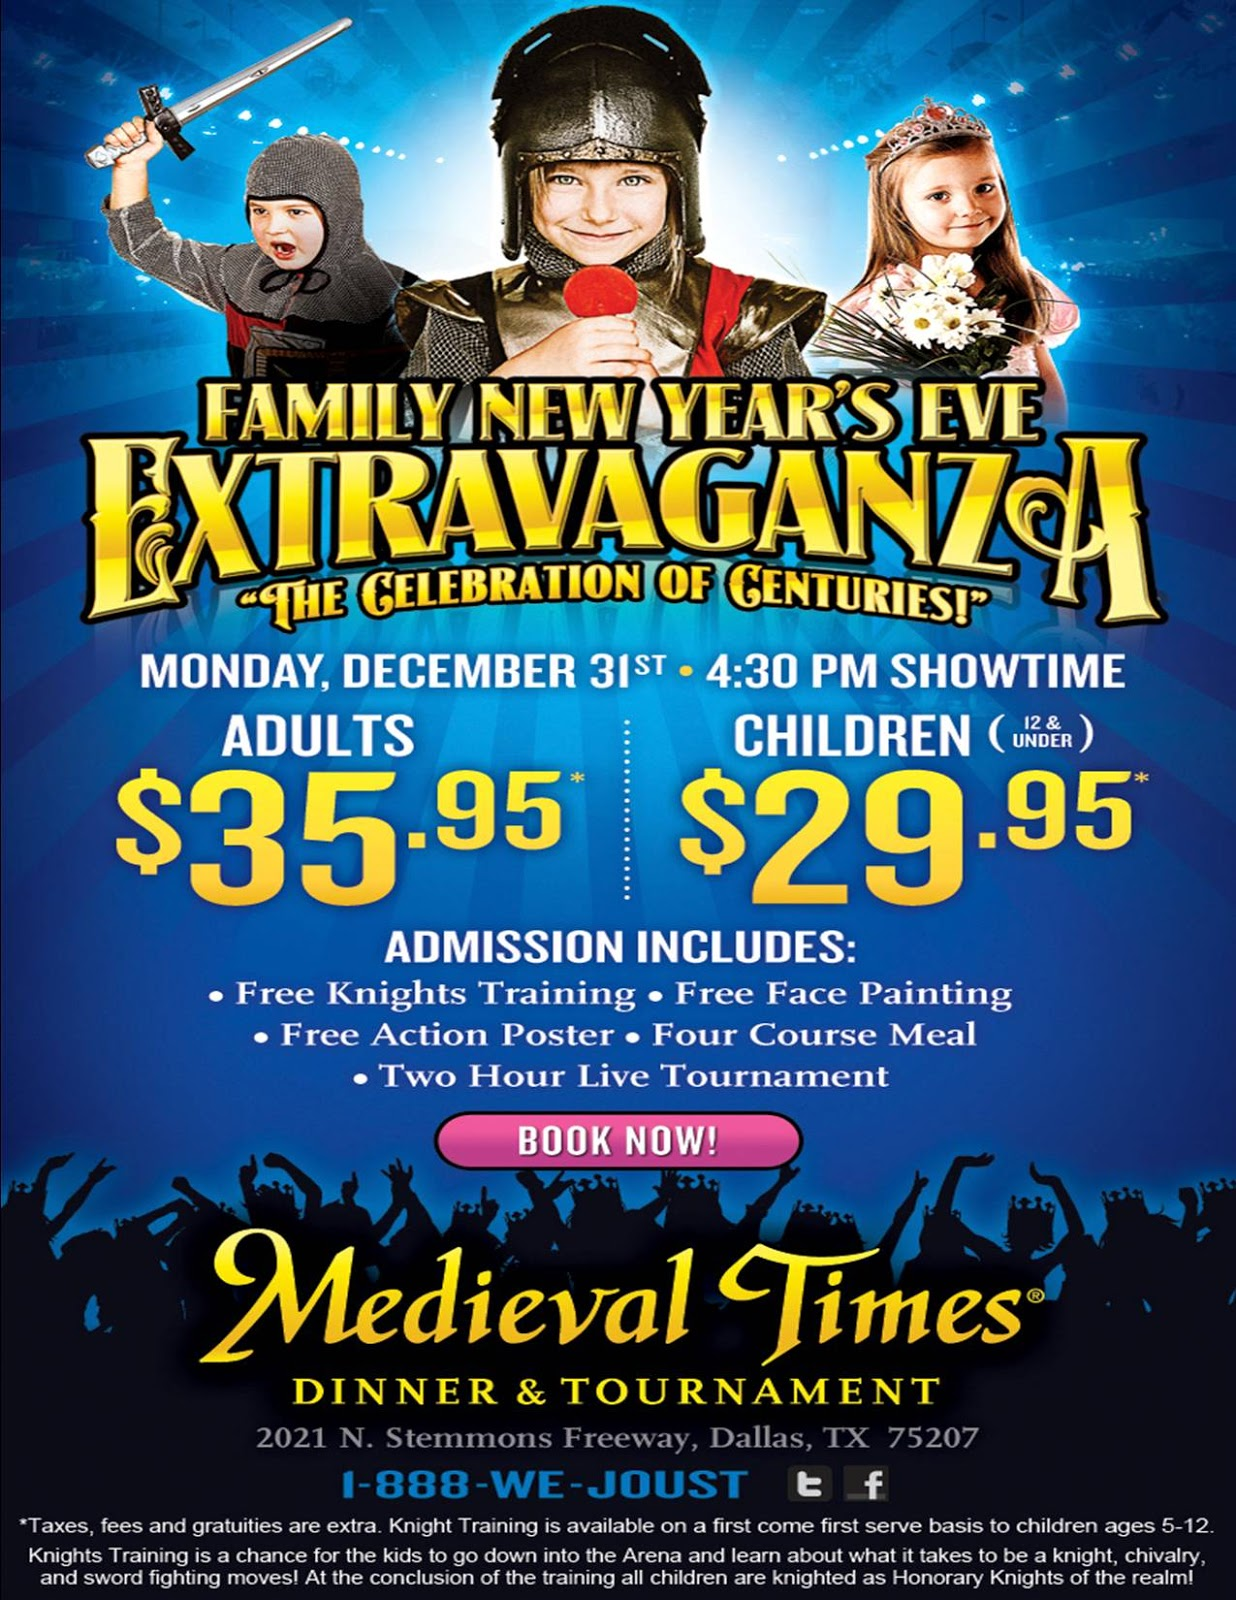 Discount coupons for medieval times